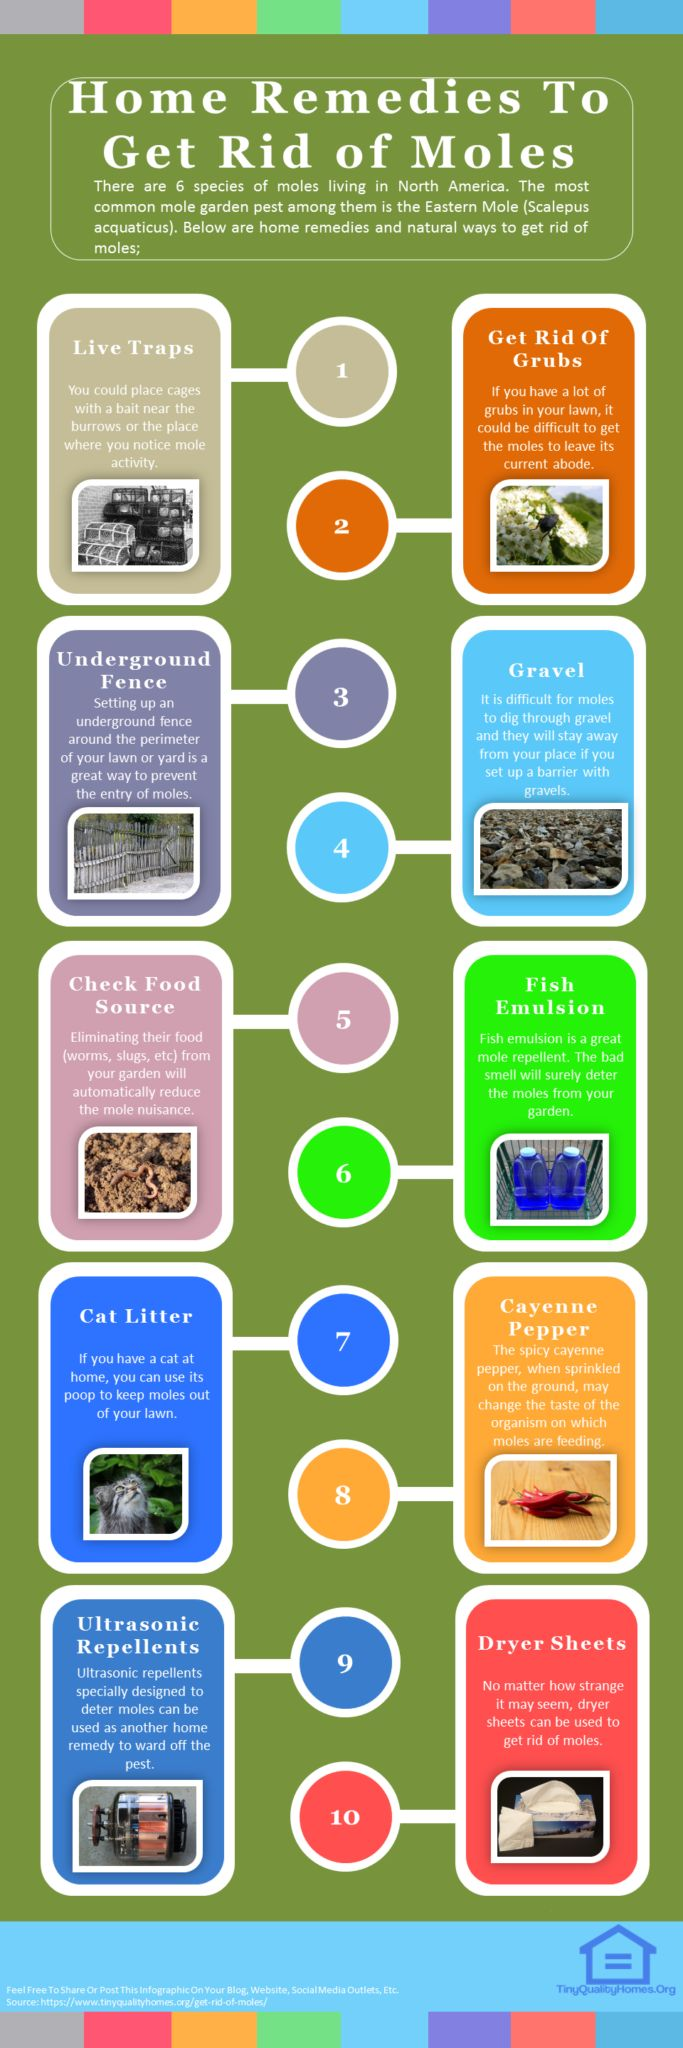 17 Home Remedies To Get Rid of Moles In Your Yard Fast: This Guide Shares Insights On The Following; How To Get Rid Of Ground Moles With Dawn Soap, How To Get Rid Of Moles In Yard Without Killing Them, How To Get Rid Of Moles In Yard Fast, How To Get Rid Of Moles In Yard With Castor Oil, How Do You Use Castor Oil To Get Rid Of Moles?, How To Get Rid Of Moles In Yard Home Remedy, How To Get Rid Of Moles In Yard With Juicy Fruit Gum, How Do I Control Moles In My Yard?, Etc.